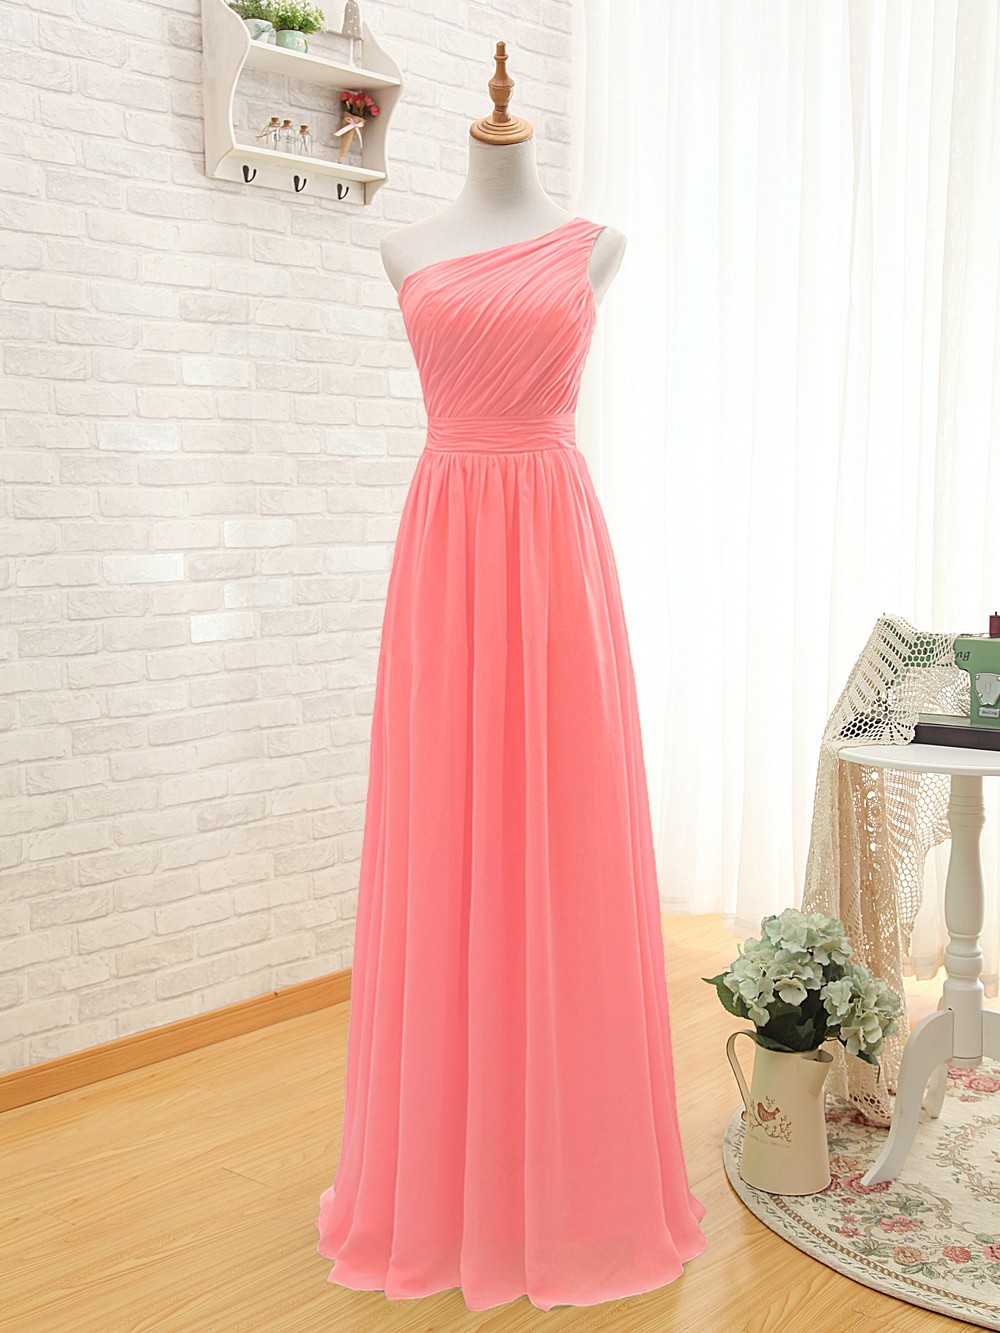 Popular Coral Colored Bridesmaid Dresses Buy Cheap Coral